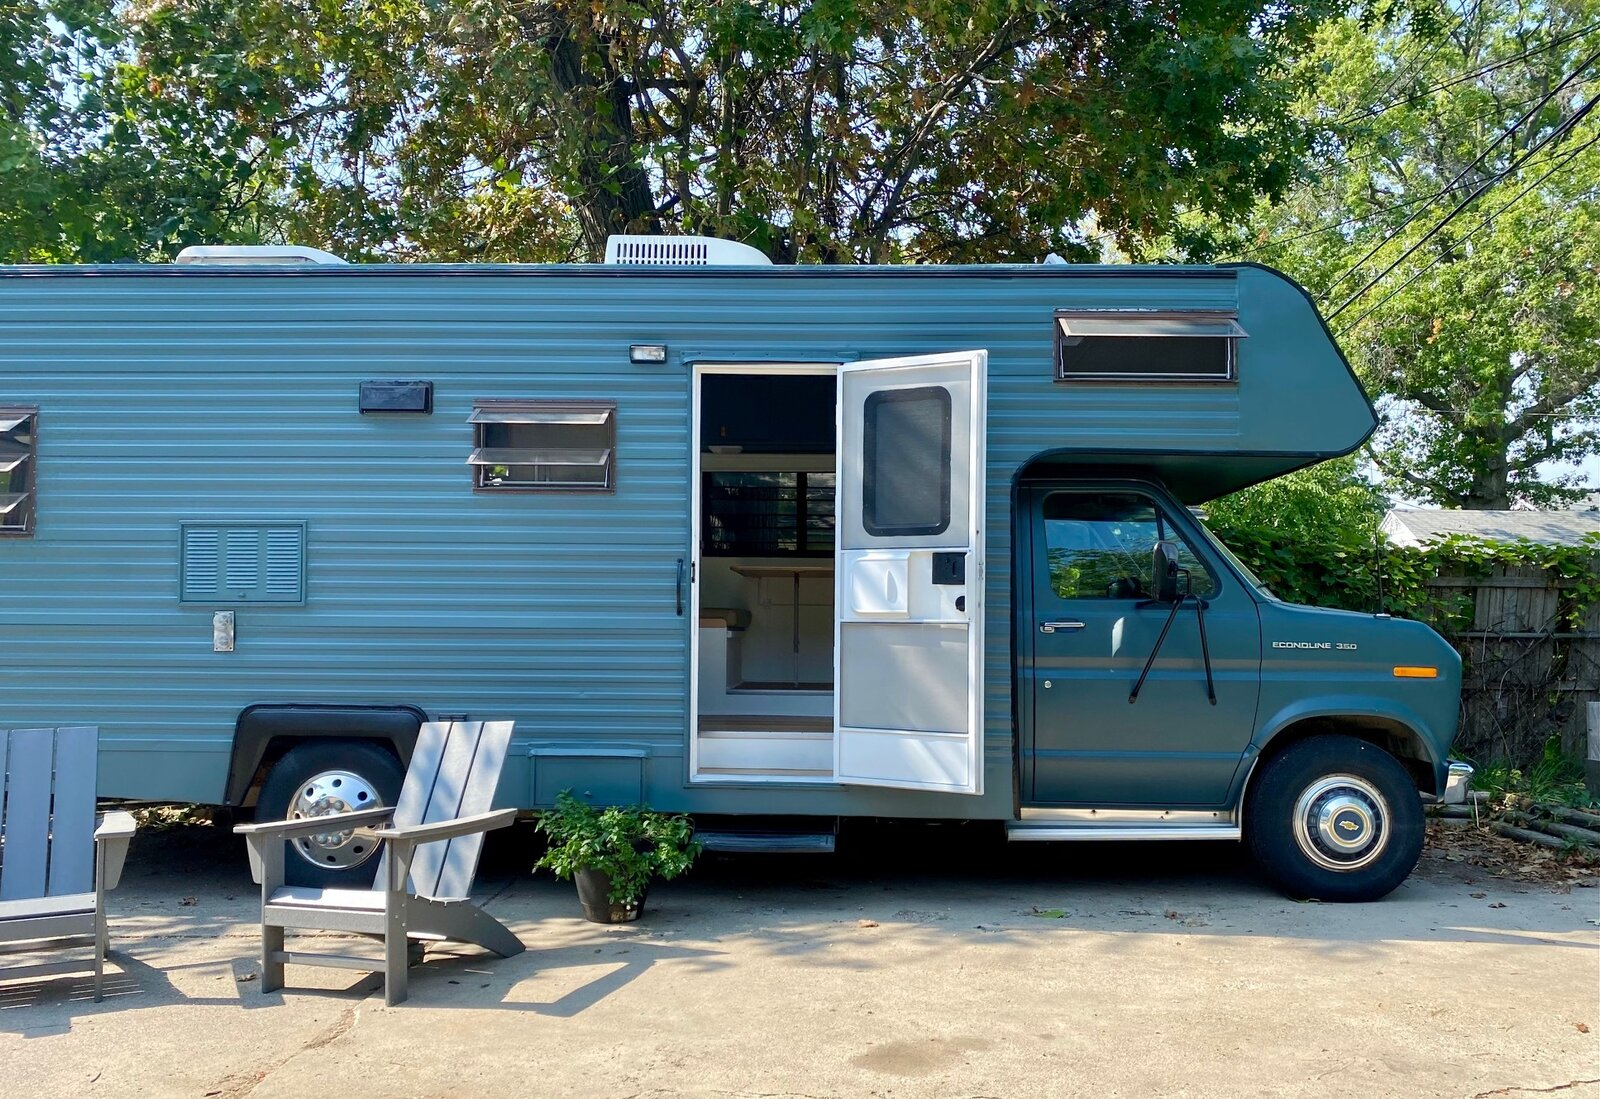 A creative couple combine their talents to give a camper a retro-inspired revamp.